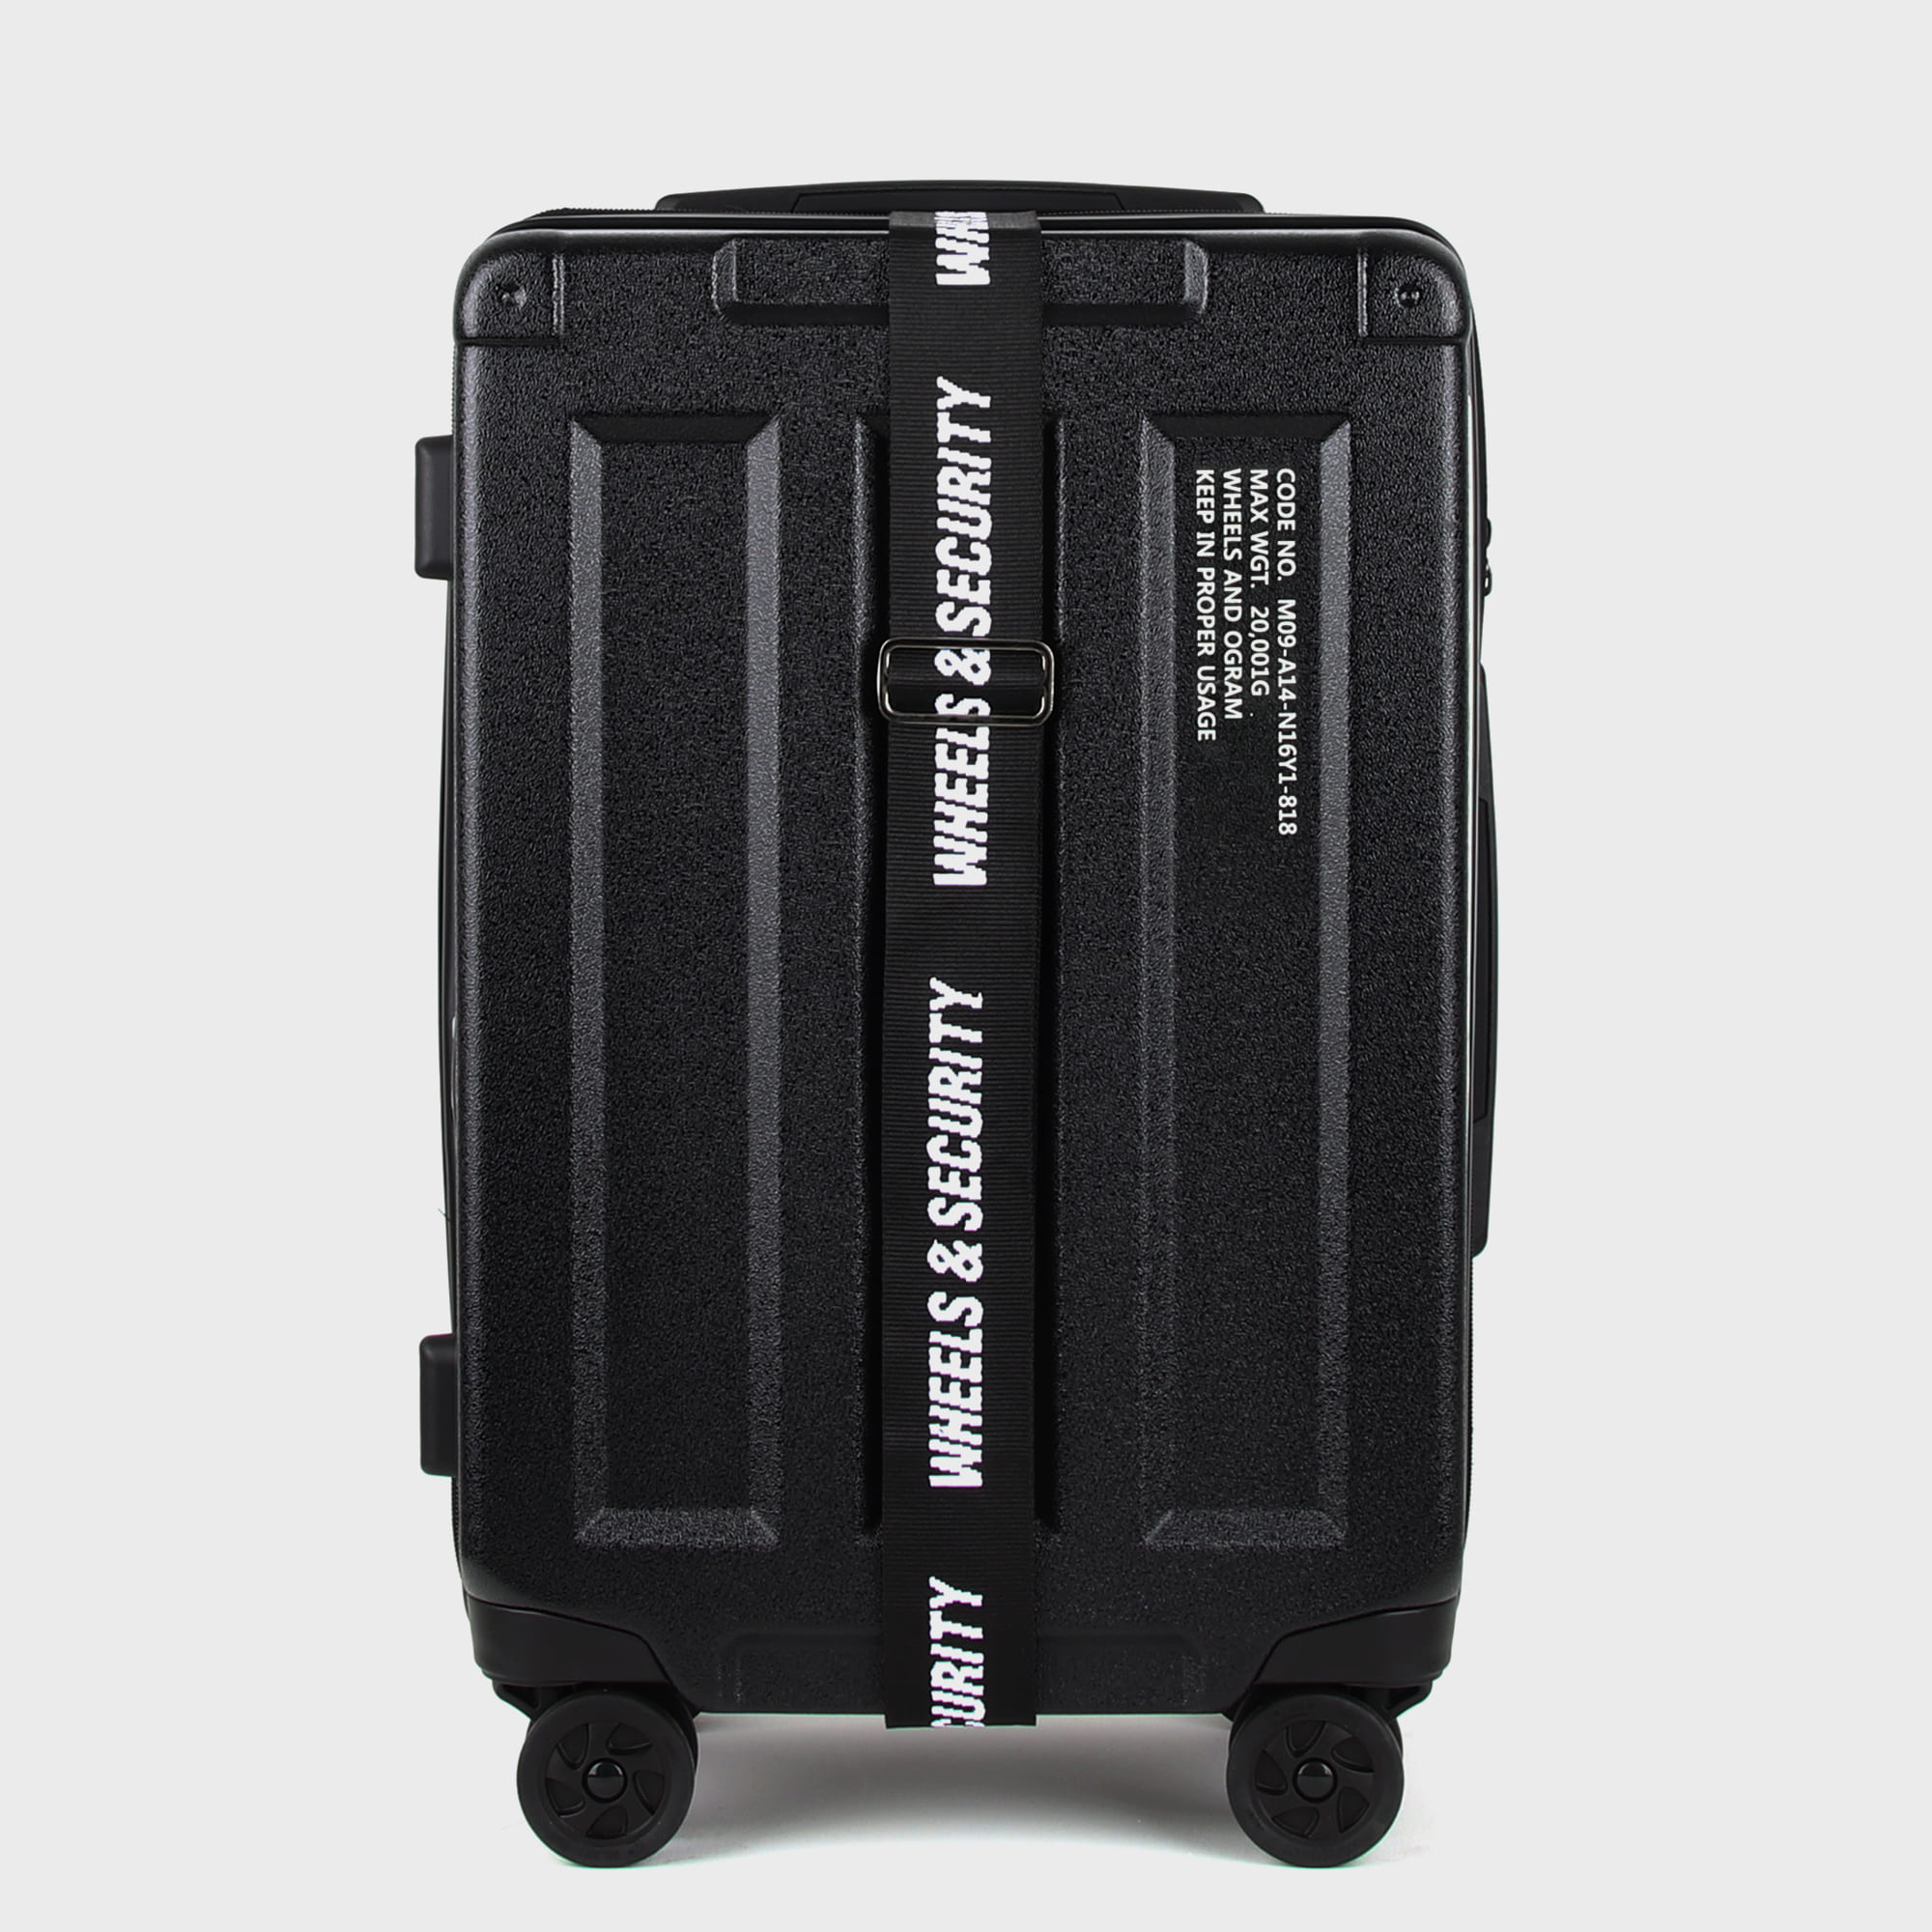 Ogram Wheels & Container PC Hardside Travel Luggage 20-, 24-, 28-inch in black